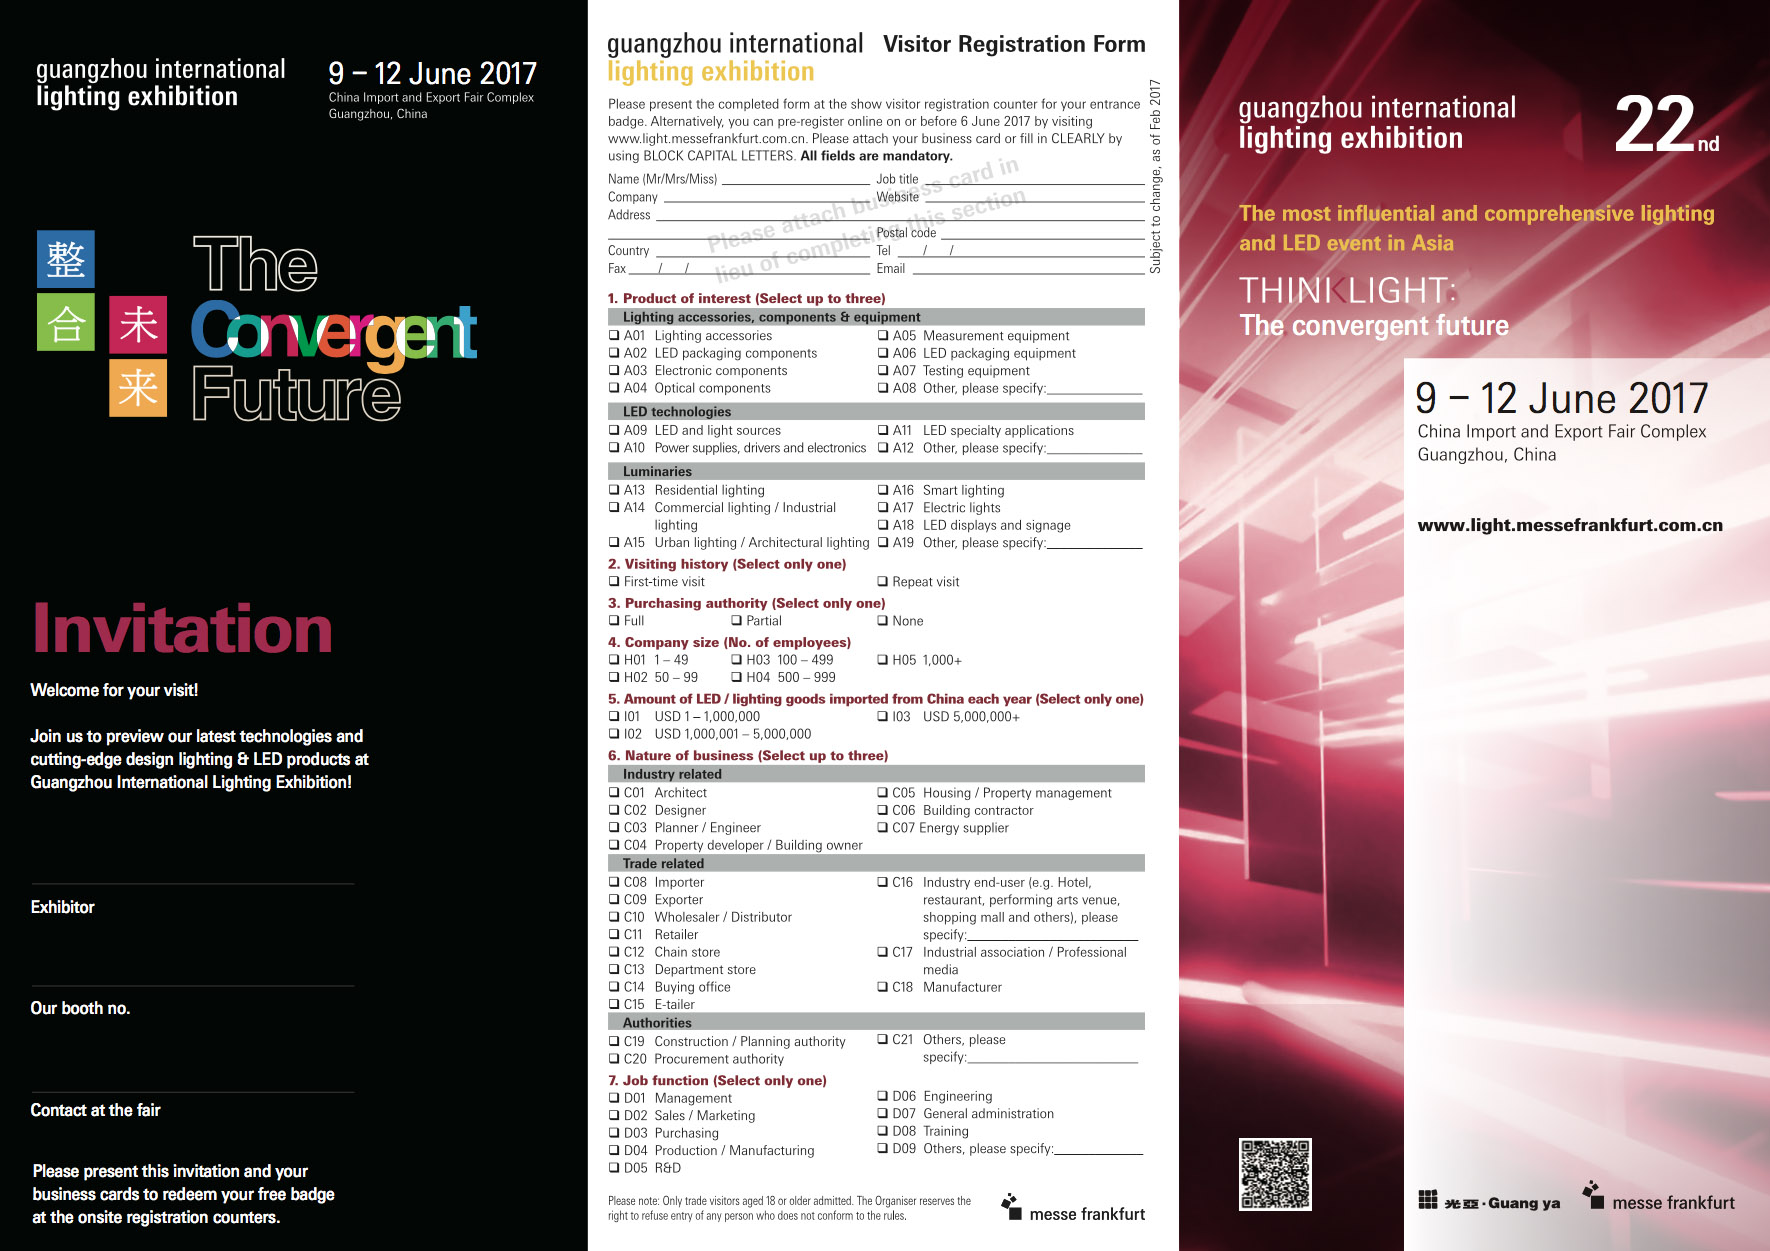 22nd Guangzhou International Lighting Exhibition